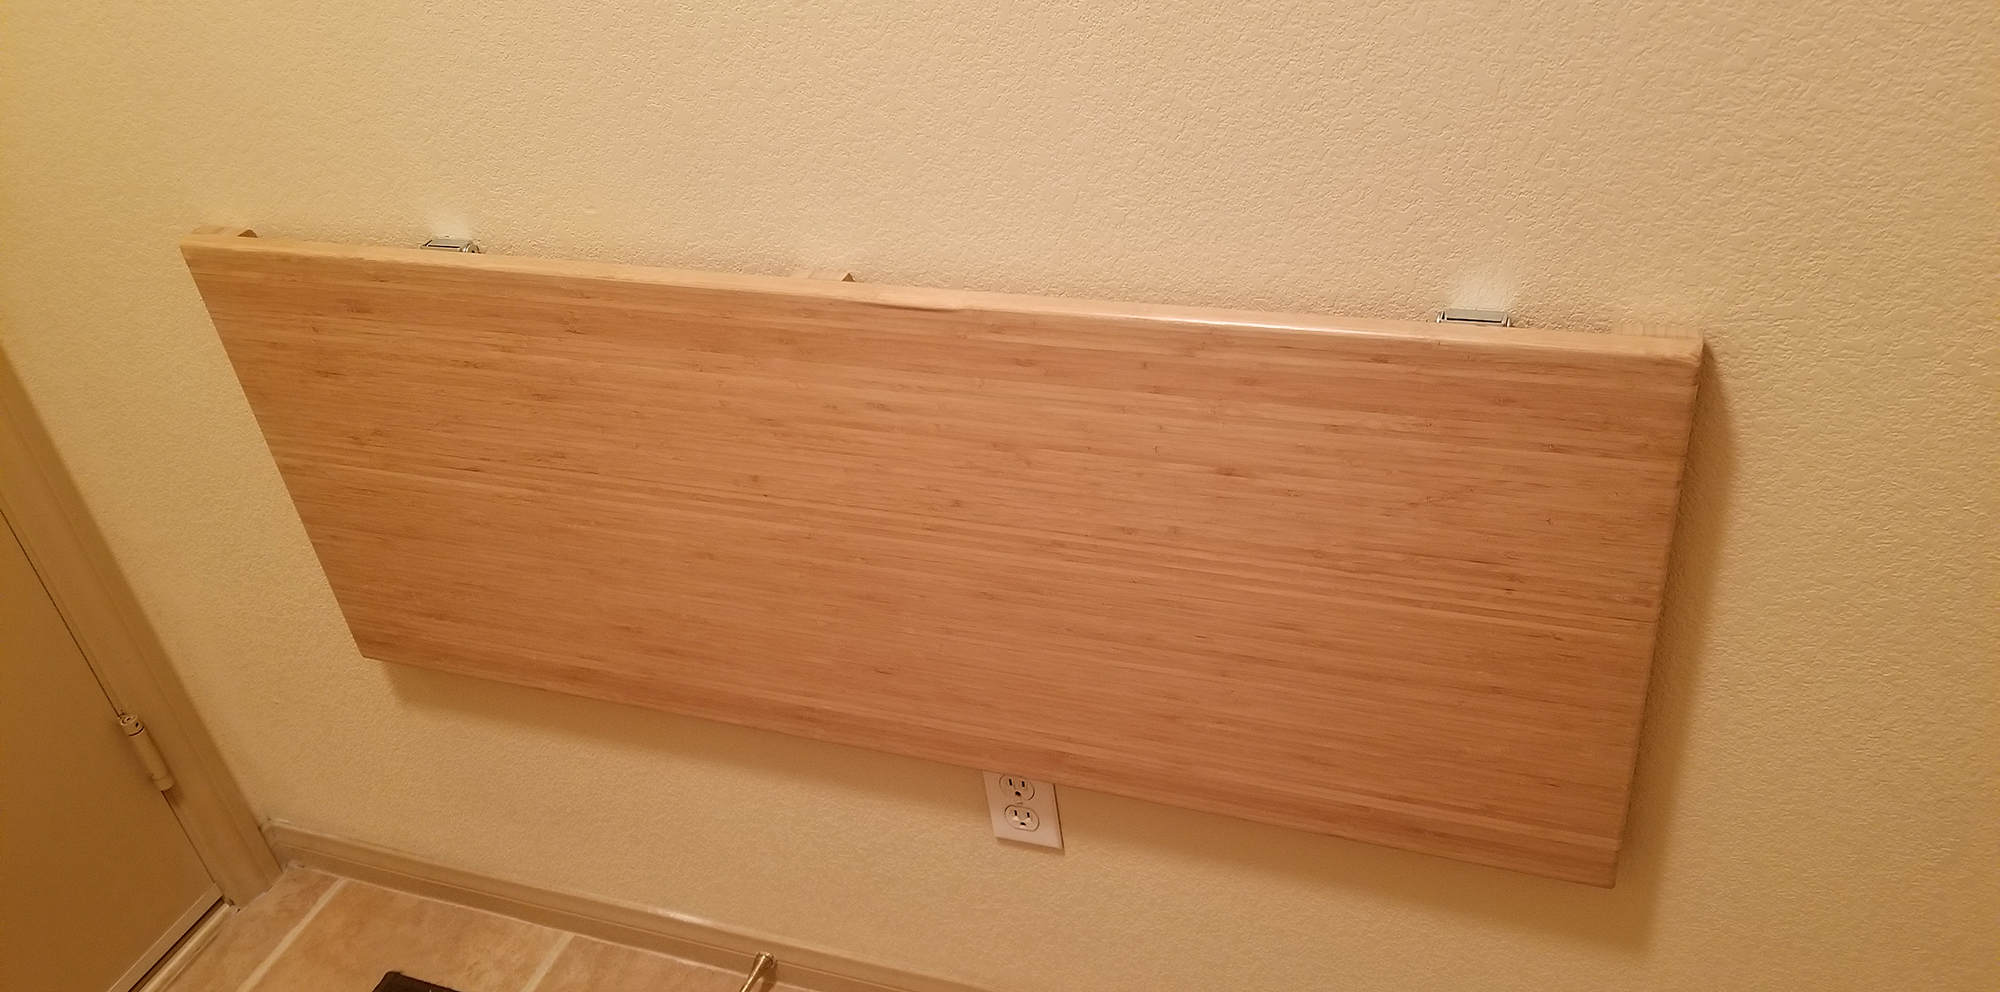 Wall Mounted Bench Folded Down